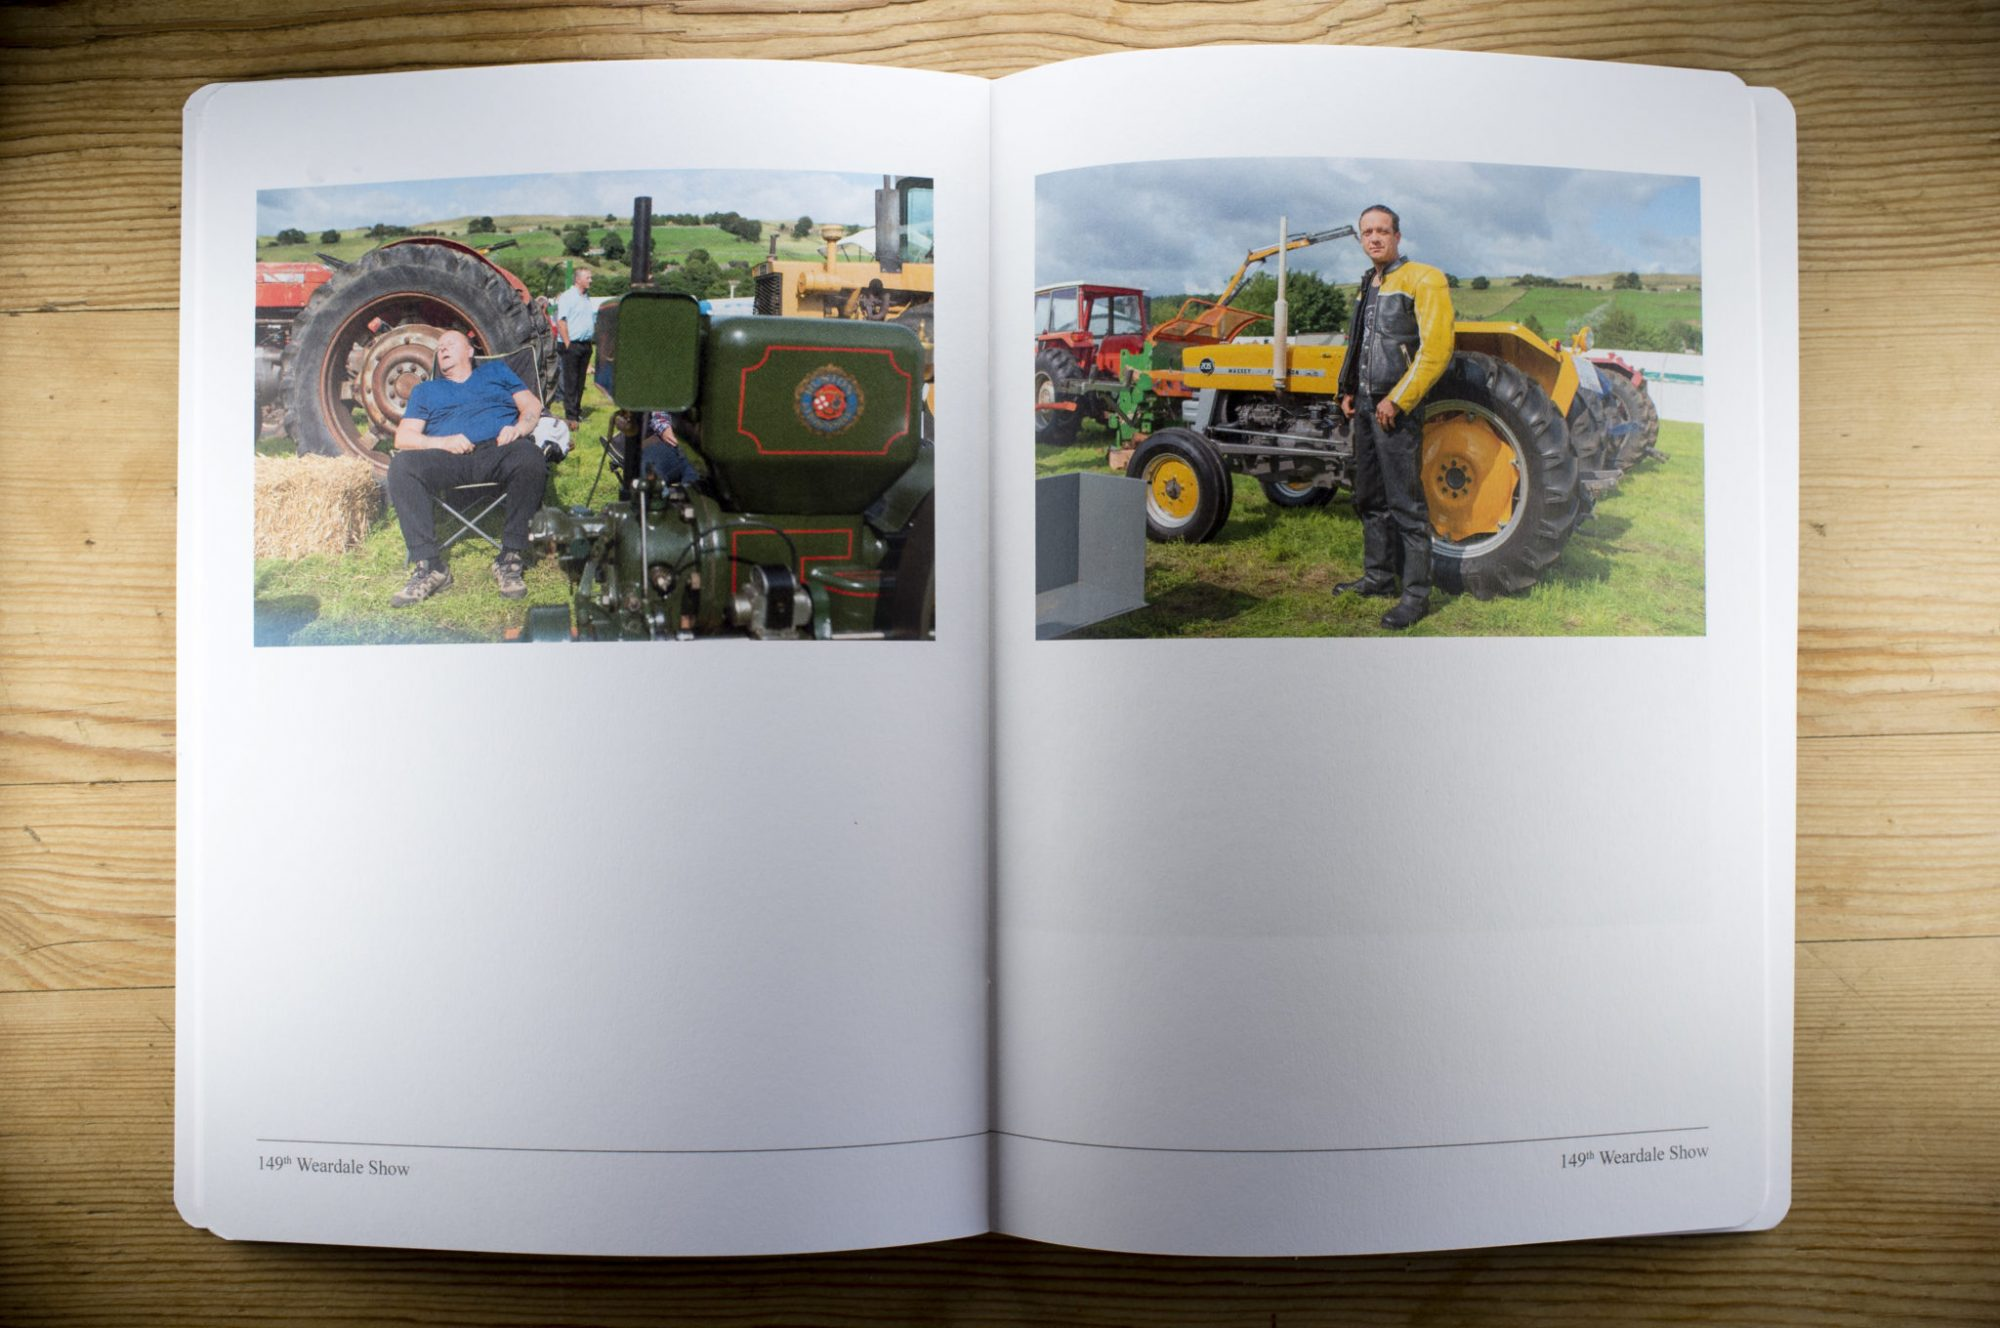 BITESIZE BOOKFAIR: Wideyed Photo Collective introduce their new book Agri[culture] — Impressions Gallery